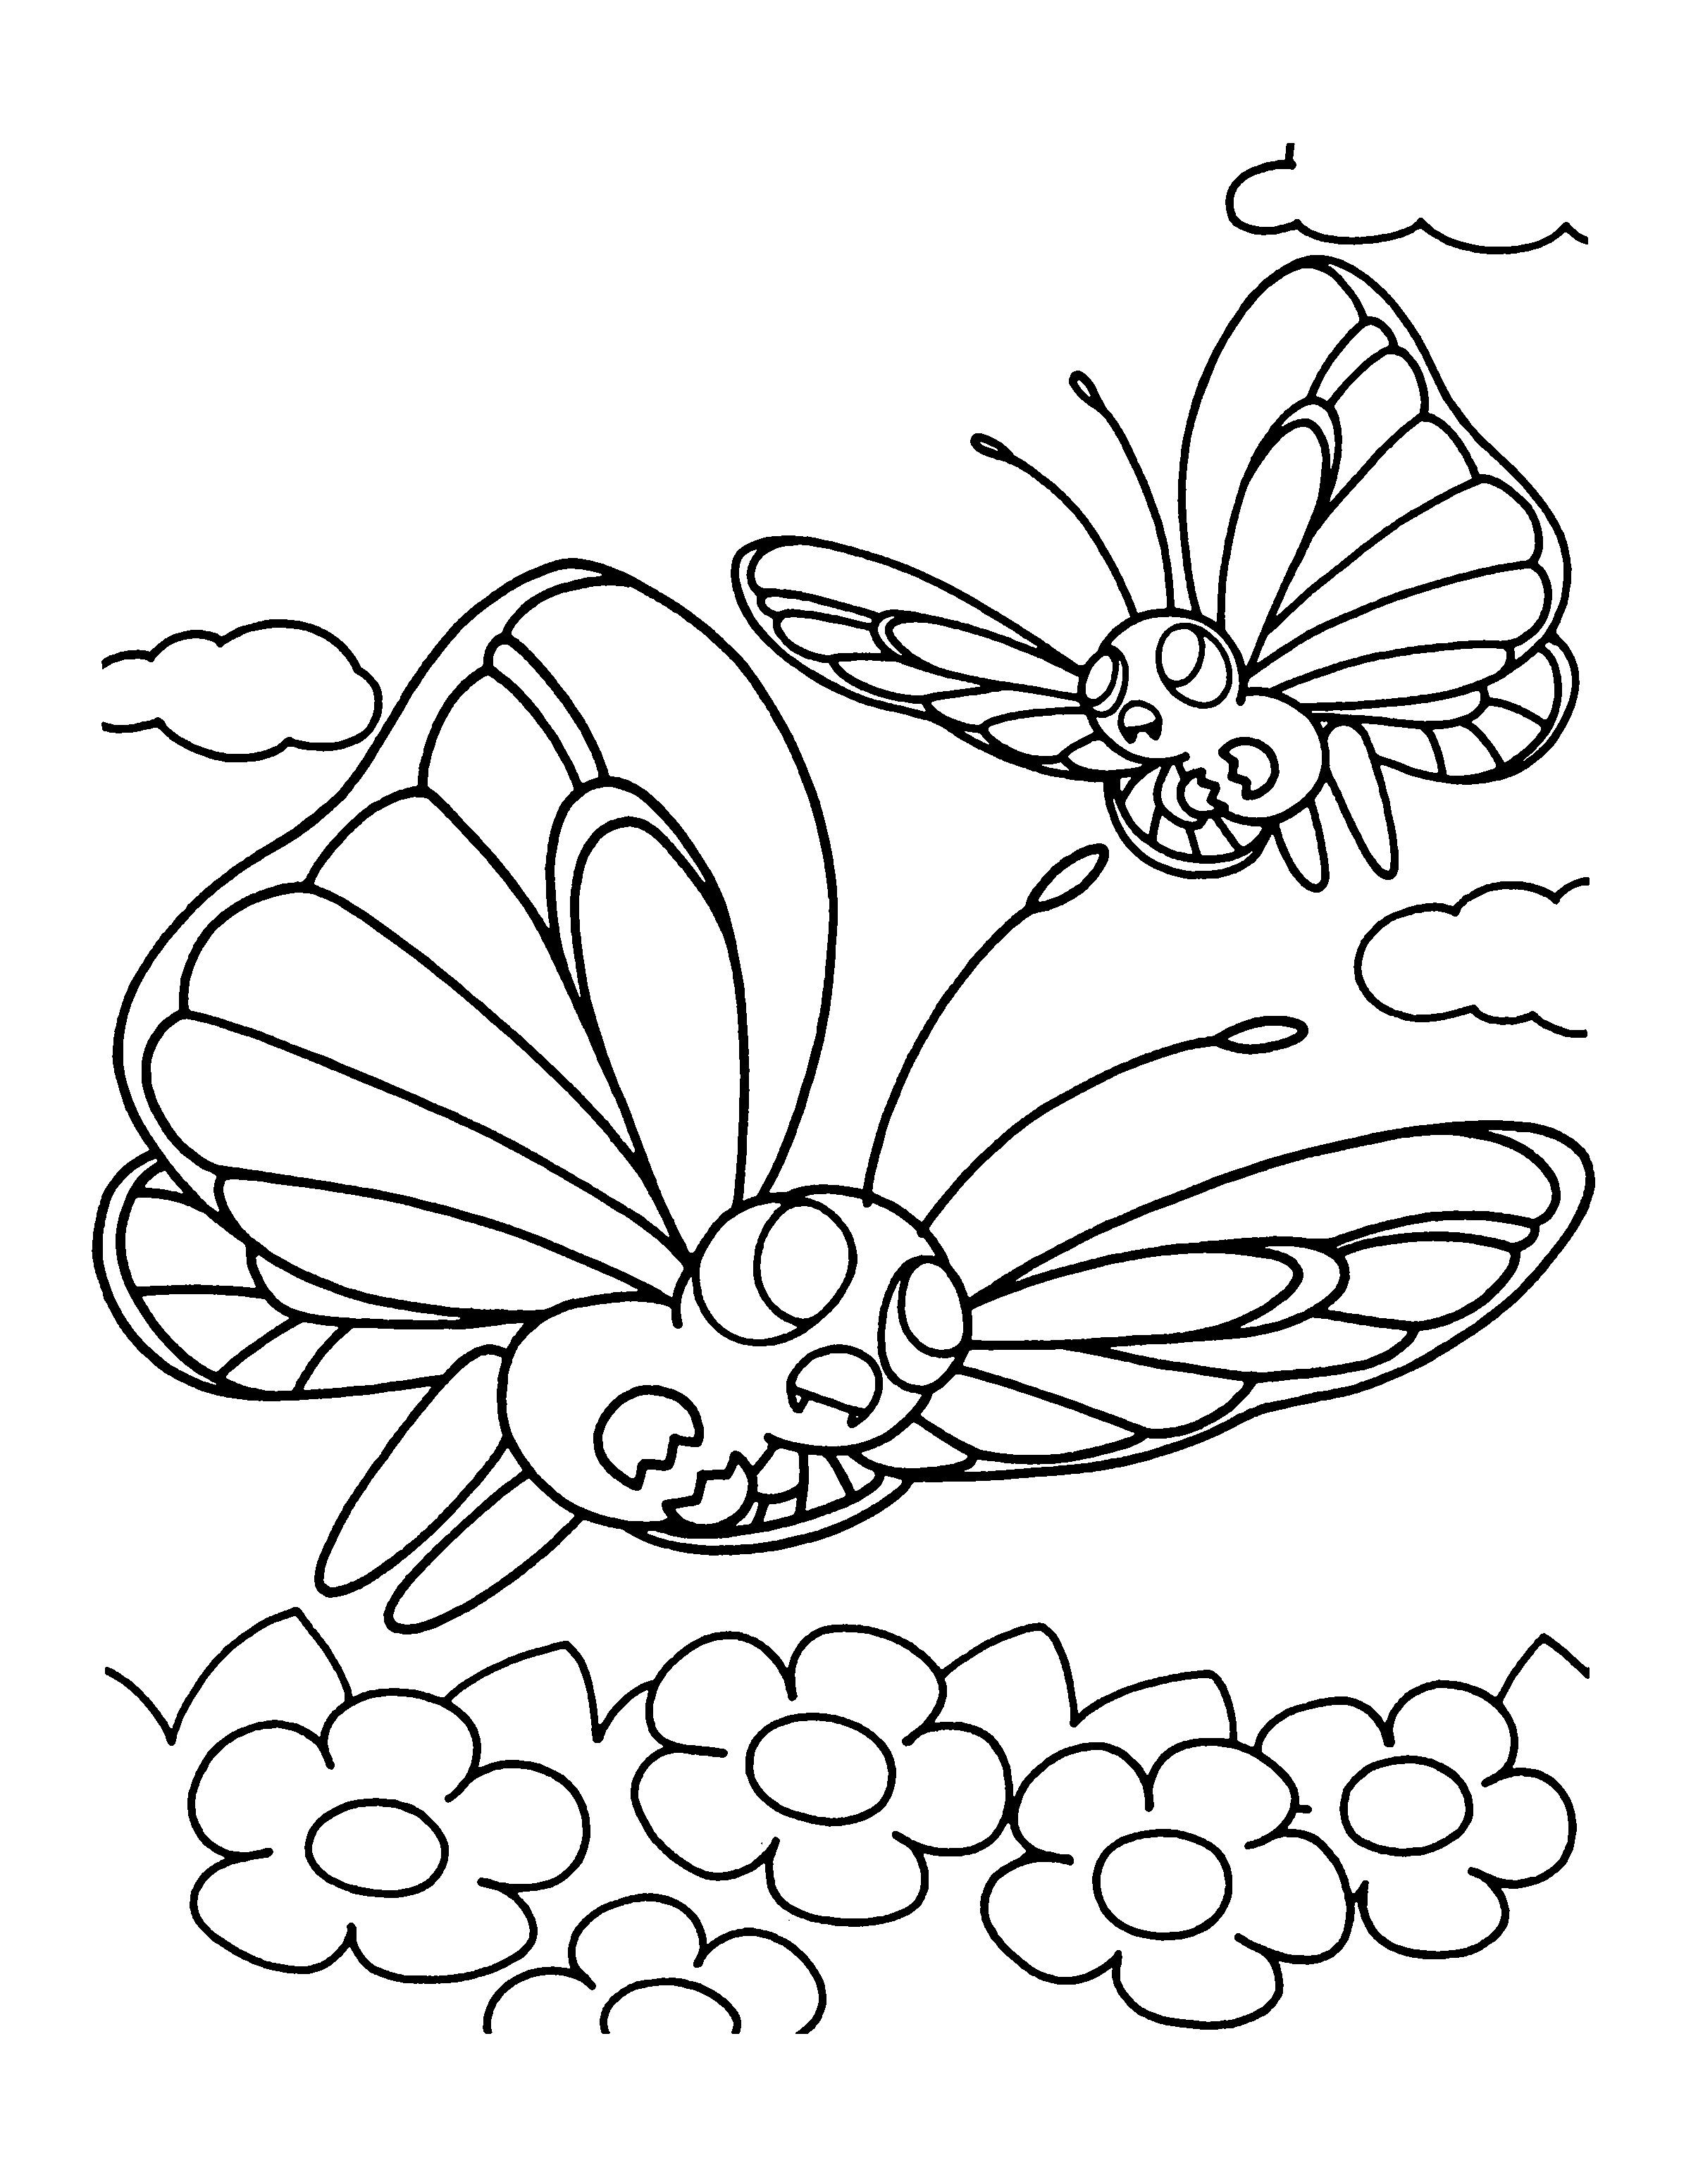 Pokemon Coloring Pages Butterfree From The Thousand Pictures On The Internet Regarding Pokemon Colorin Pokemon Coloring Pokemon Coloring Pages Coloring Pages